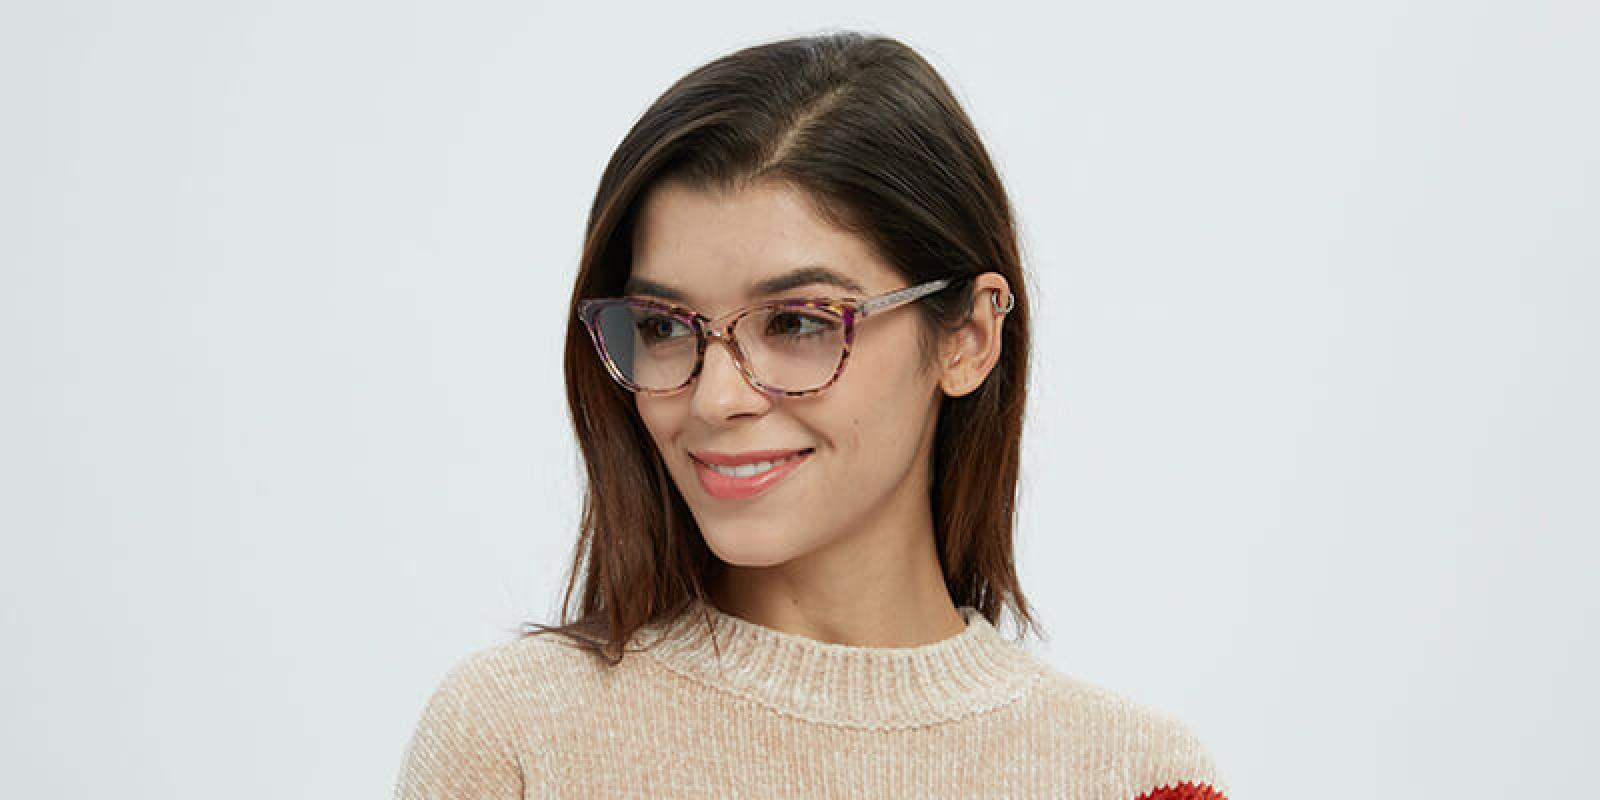 Evangeline-Red-Acetate-Eyeglasses-detail2